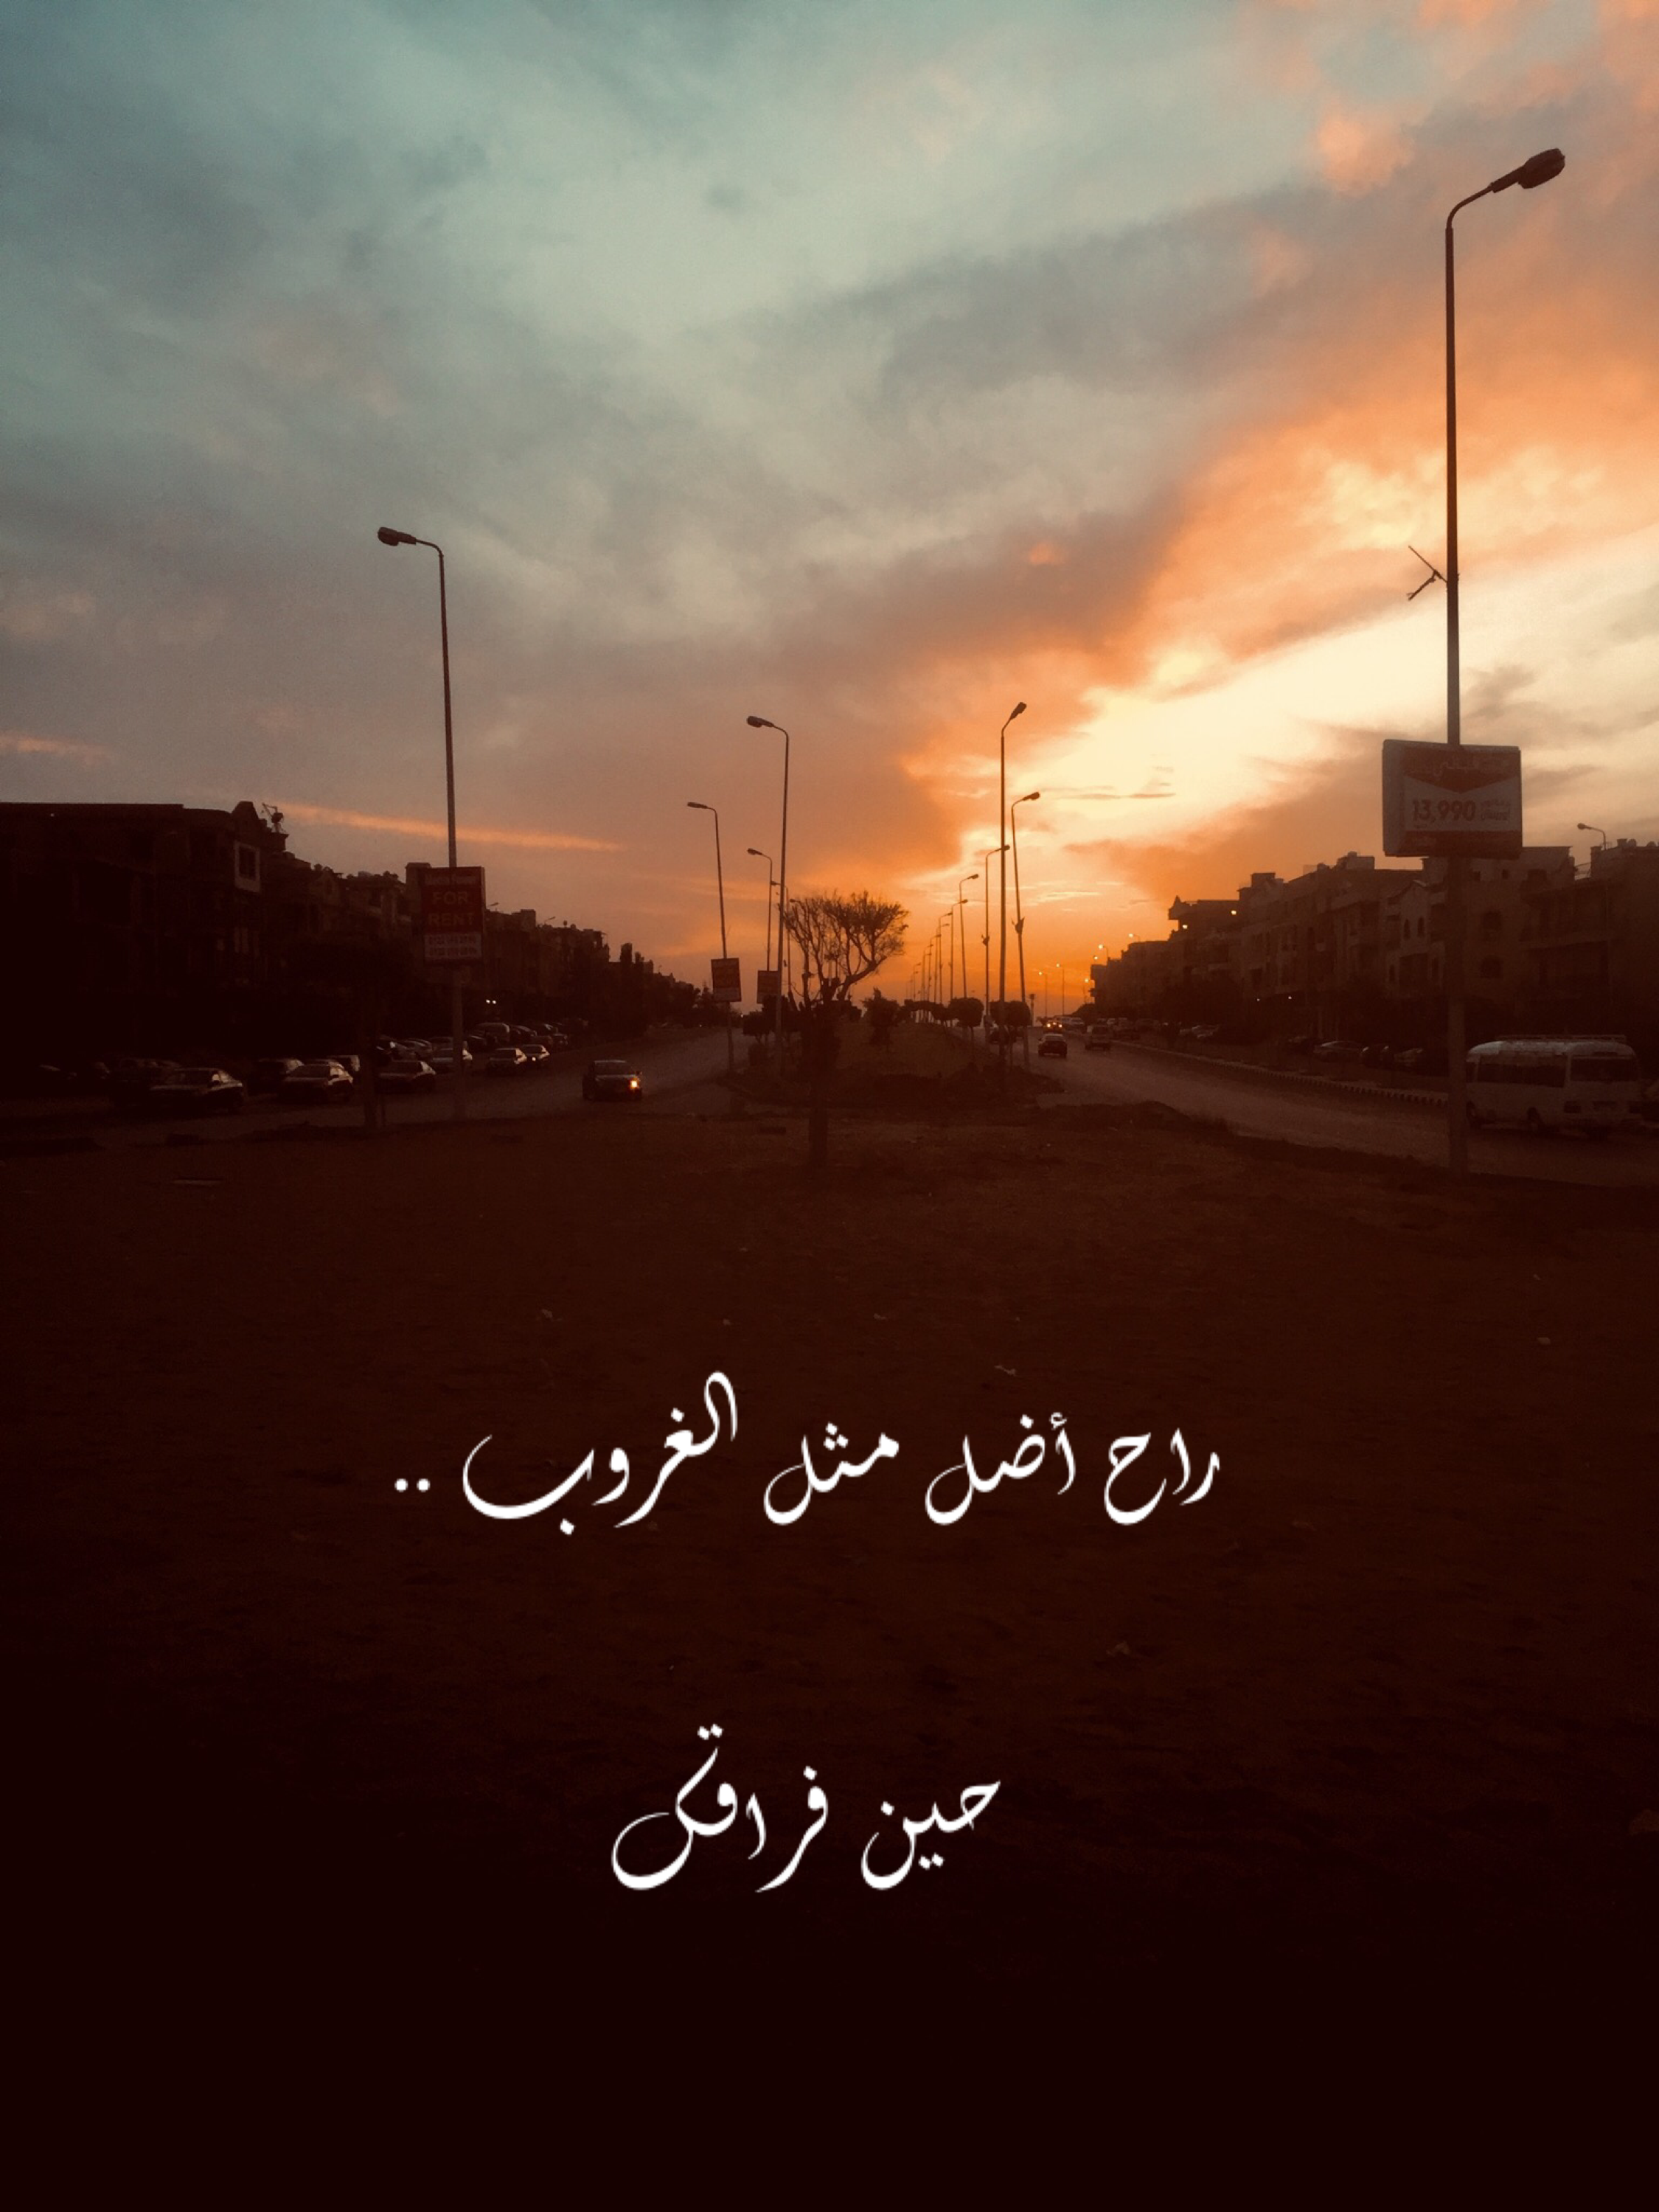 Sunset In 2020 Sunset Captions Arabic Love Quotes Arabic Quotes